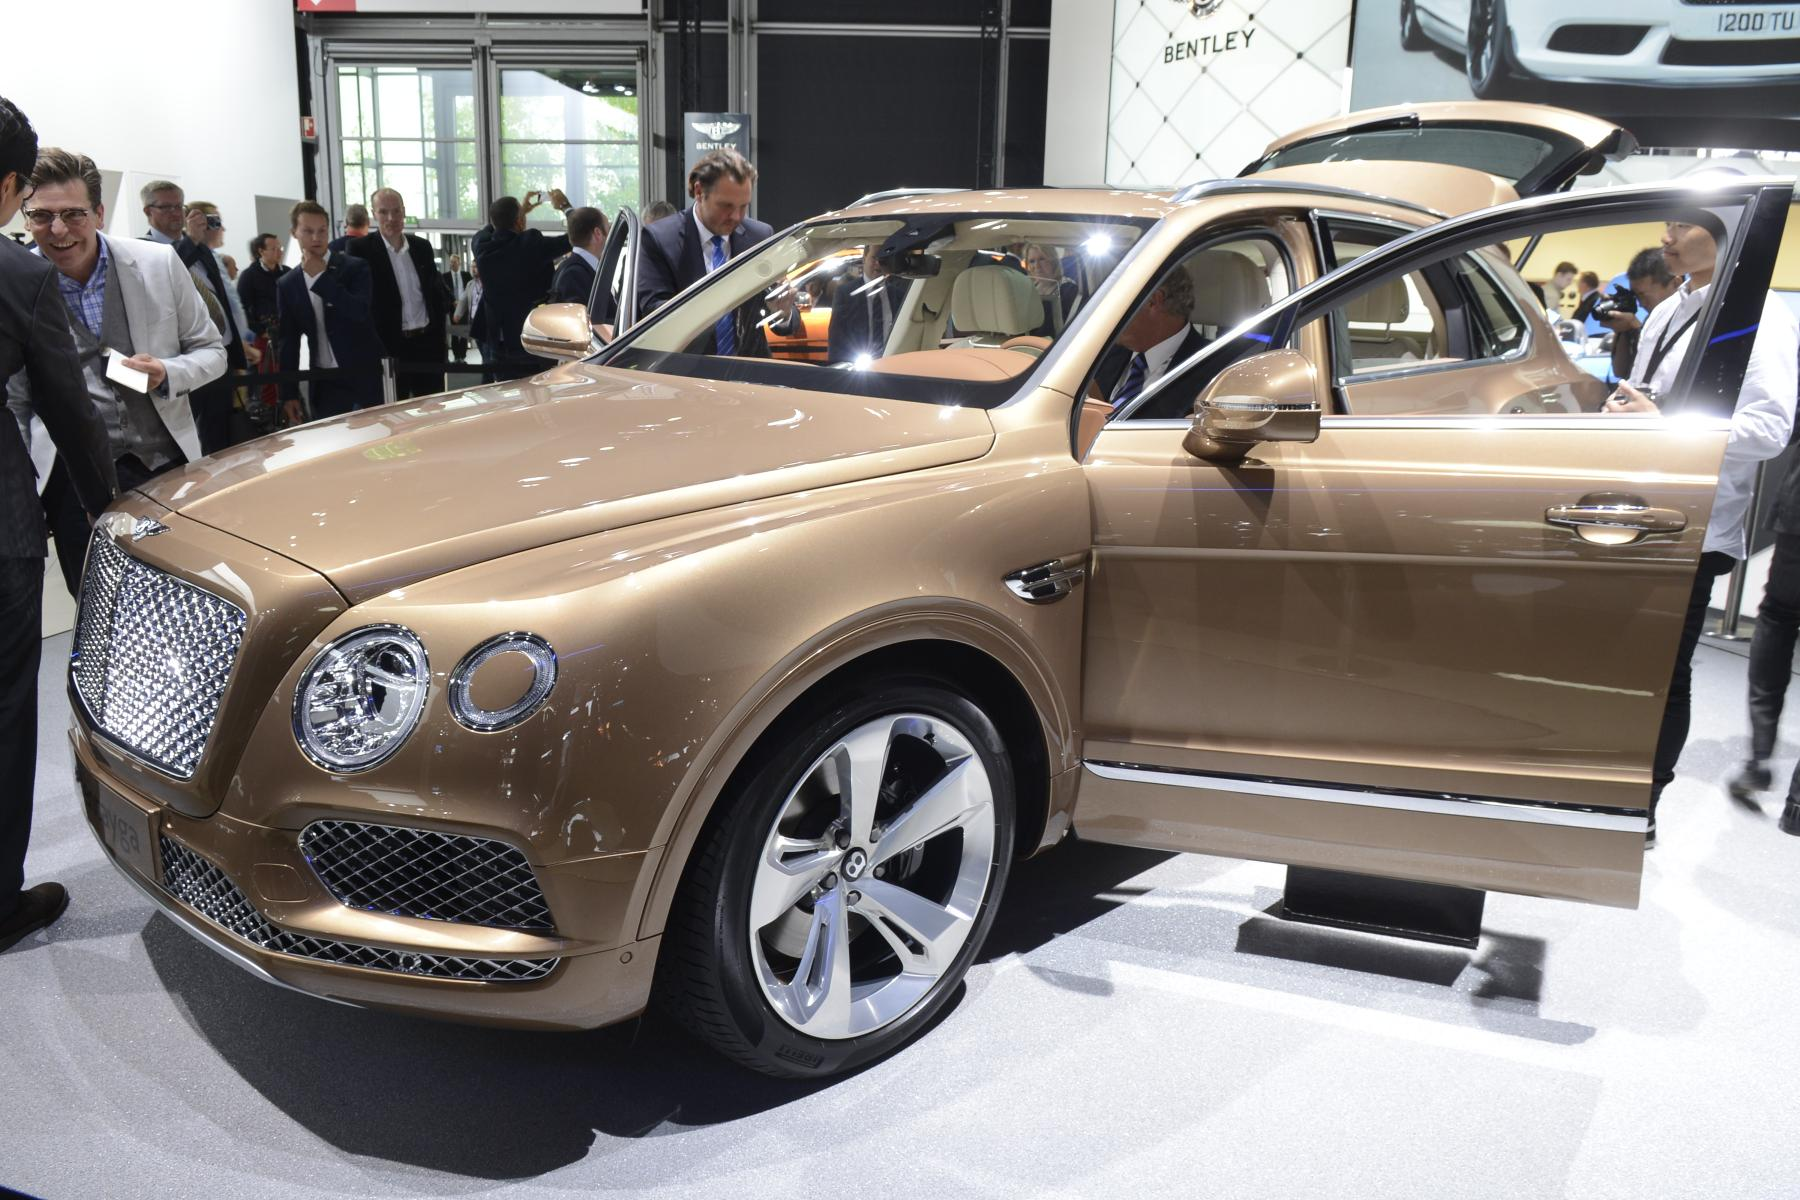 tag little large news bentley testing camouflage continental price view gtc spied spy auto photos with truck